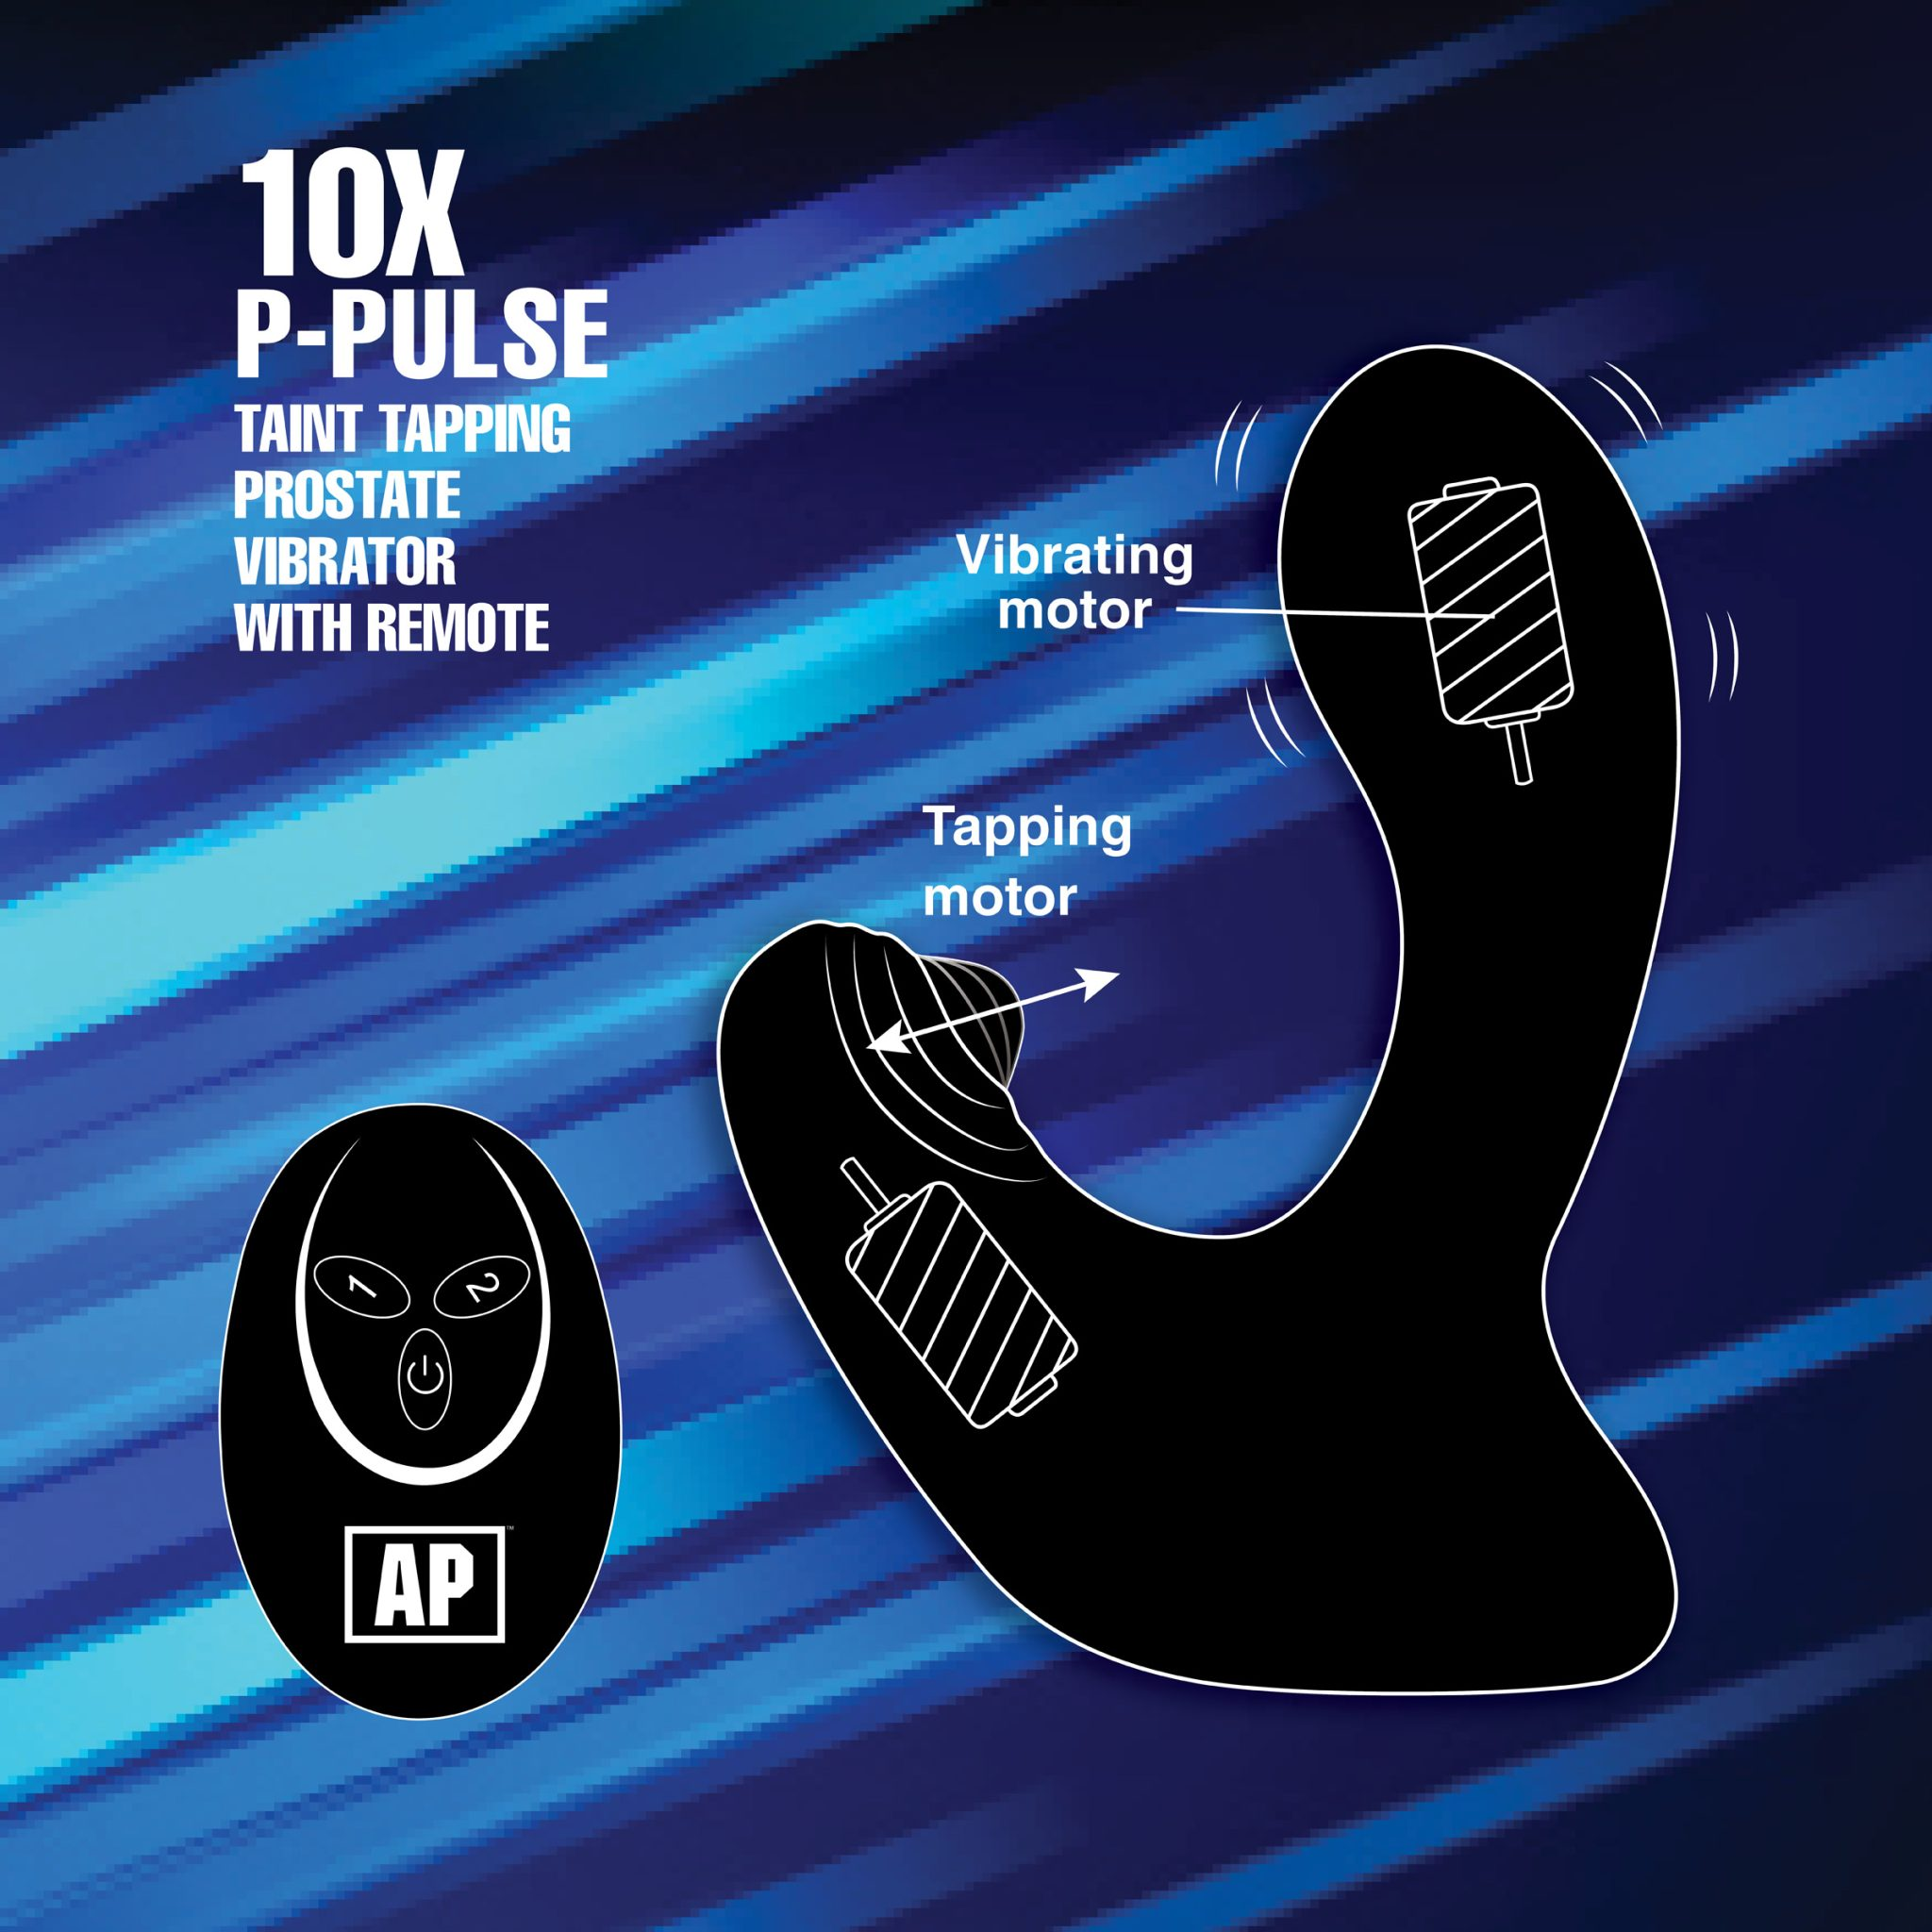 10X P-Pulse Taint Tapping Silicone Prostate Stimulator with Remote